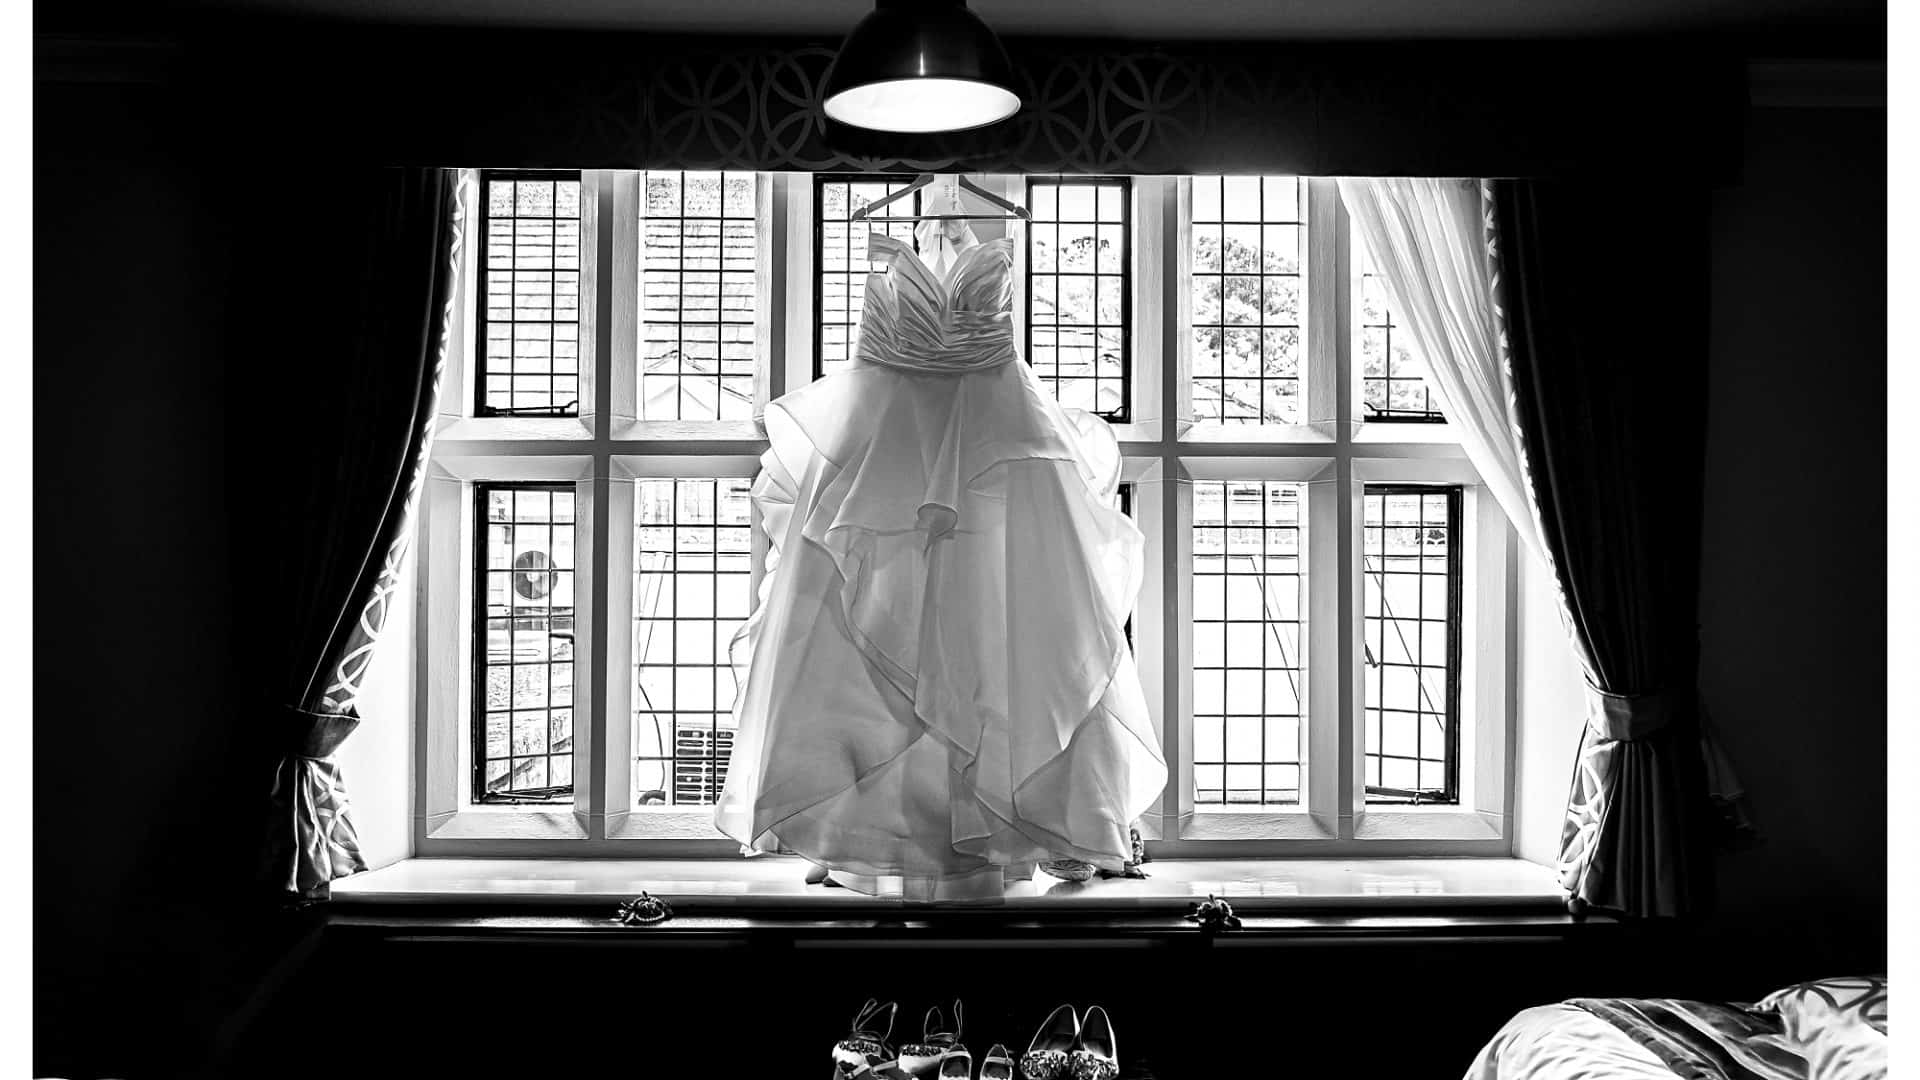 Wedding Dress hung up in front of window at rogerthorpe manor